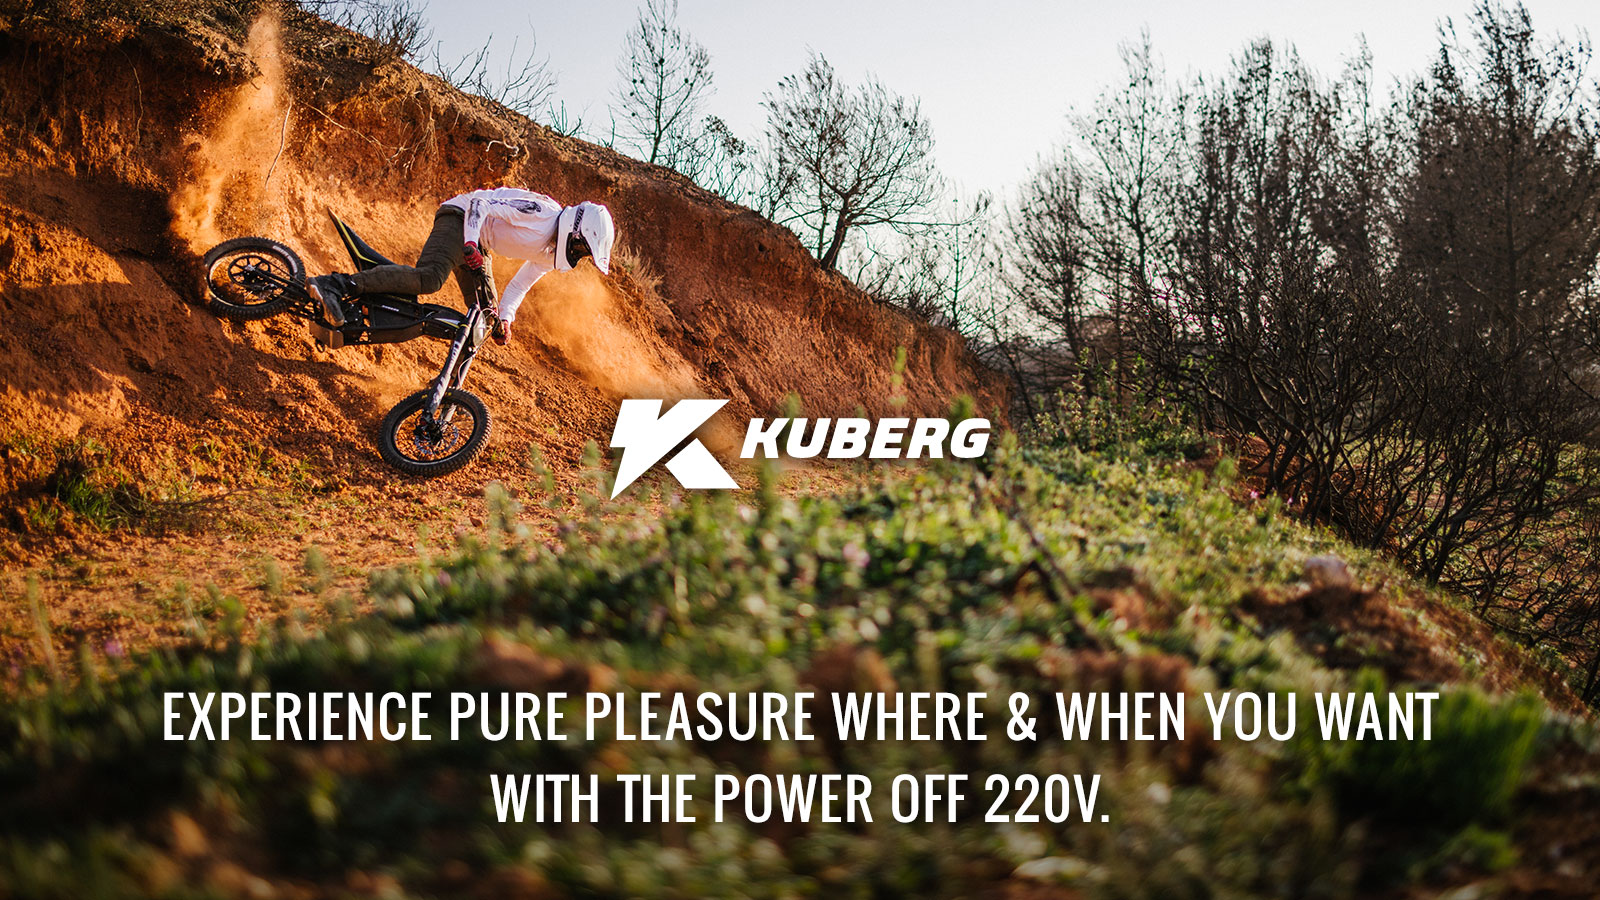 Kuberg - the power of 220 volts